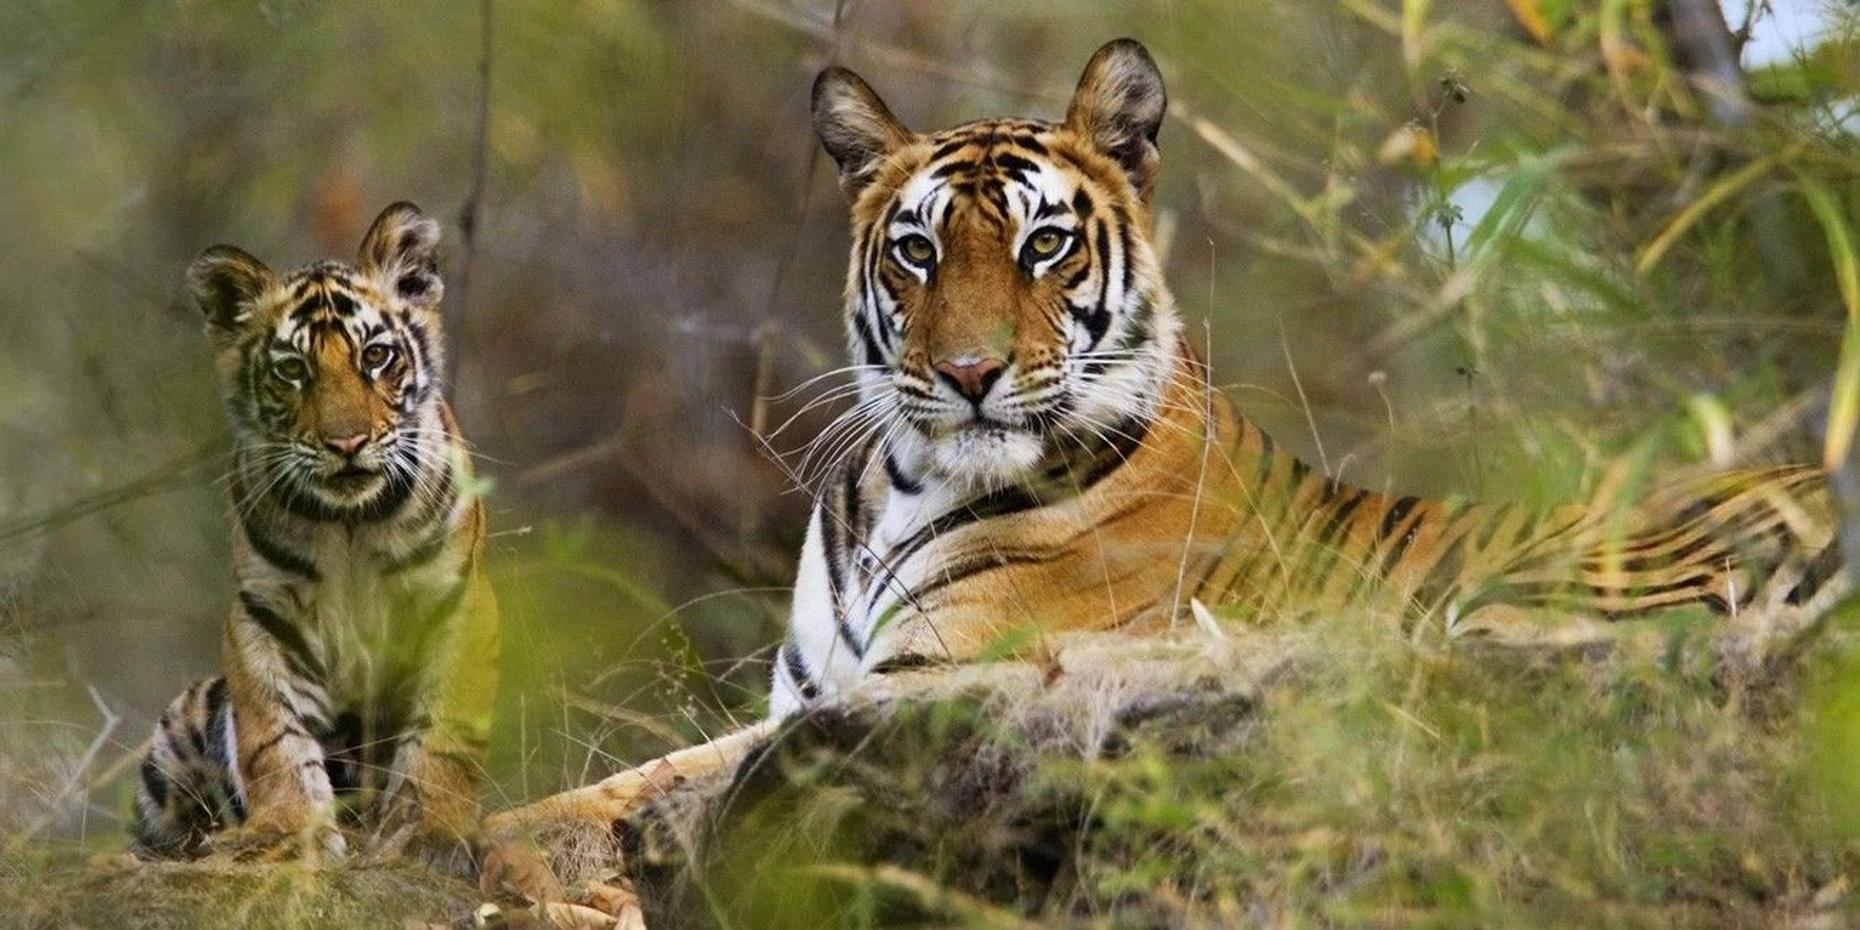 9-Day Wildlife Tour of Central India